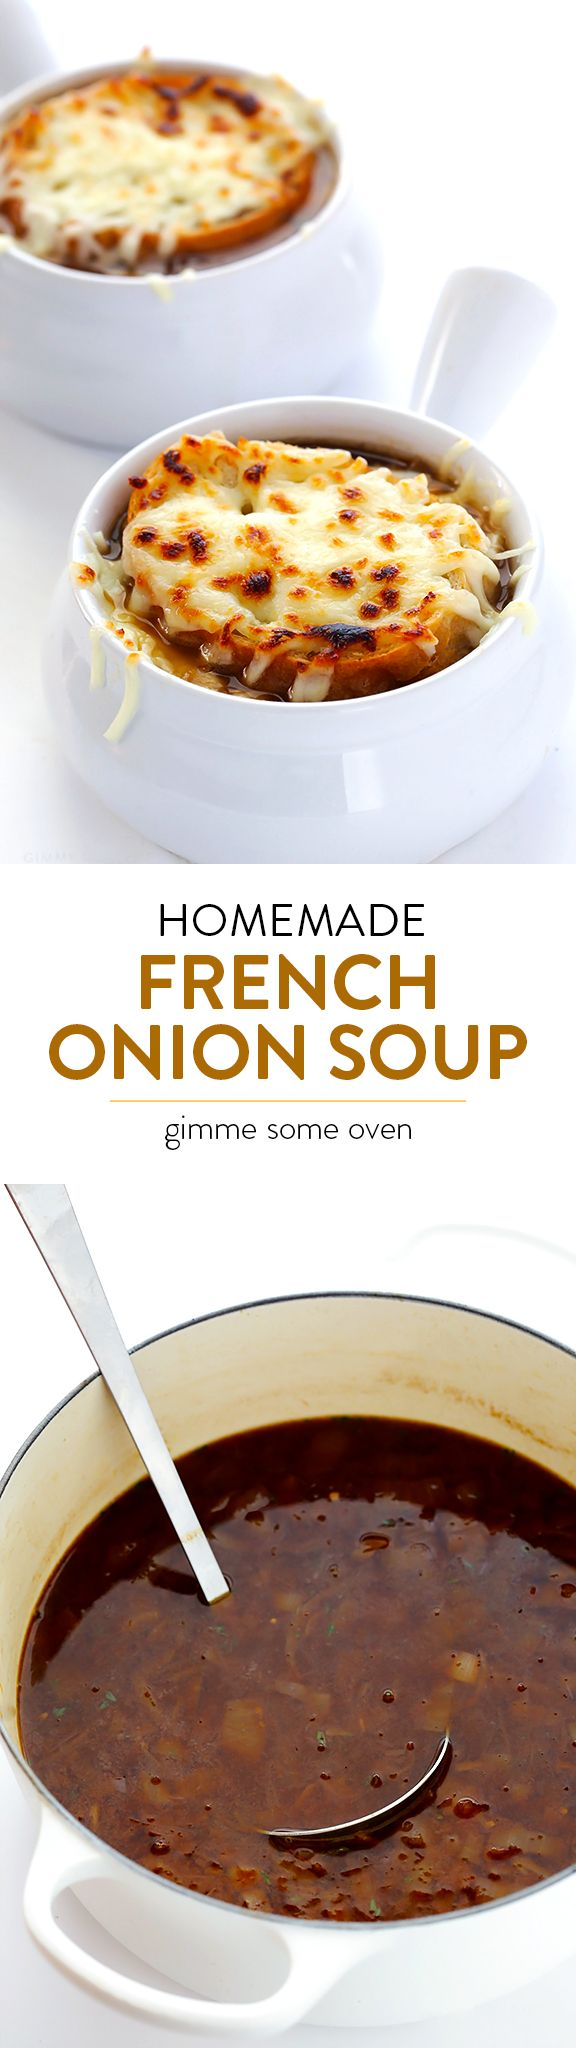 130 best Soup images on Pinterest | Cooking food, Soups and Chili ...